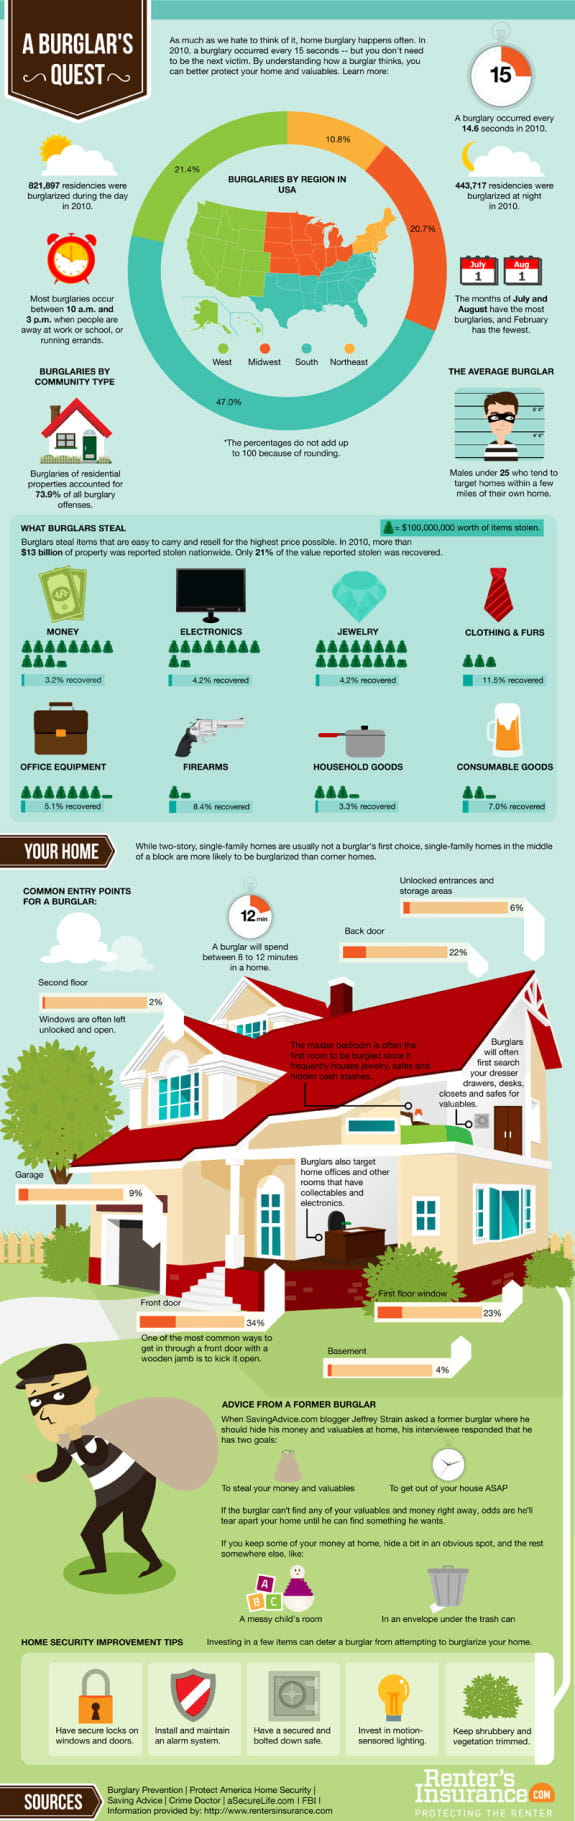 Security Infographic A Burglar 39 S Quest